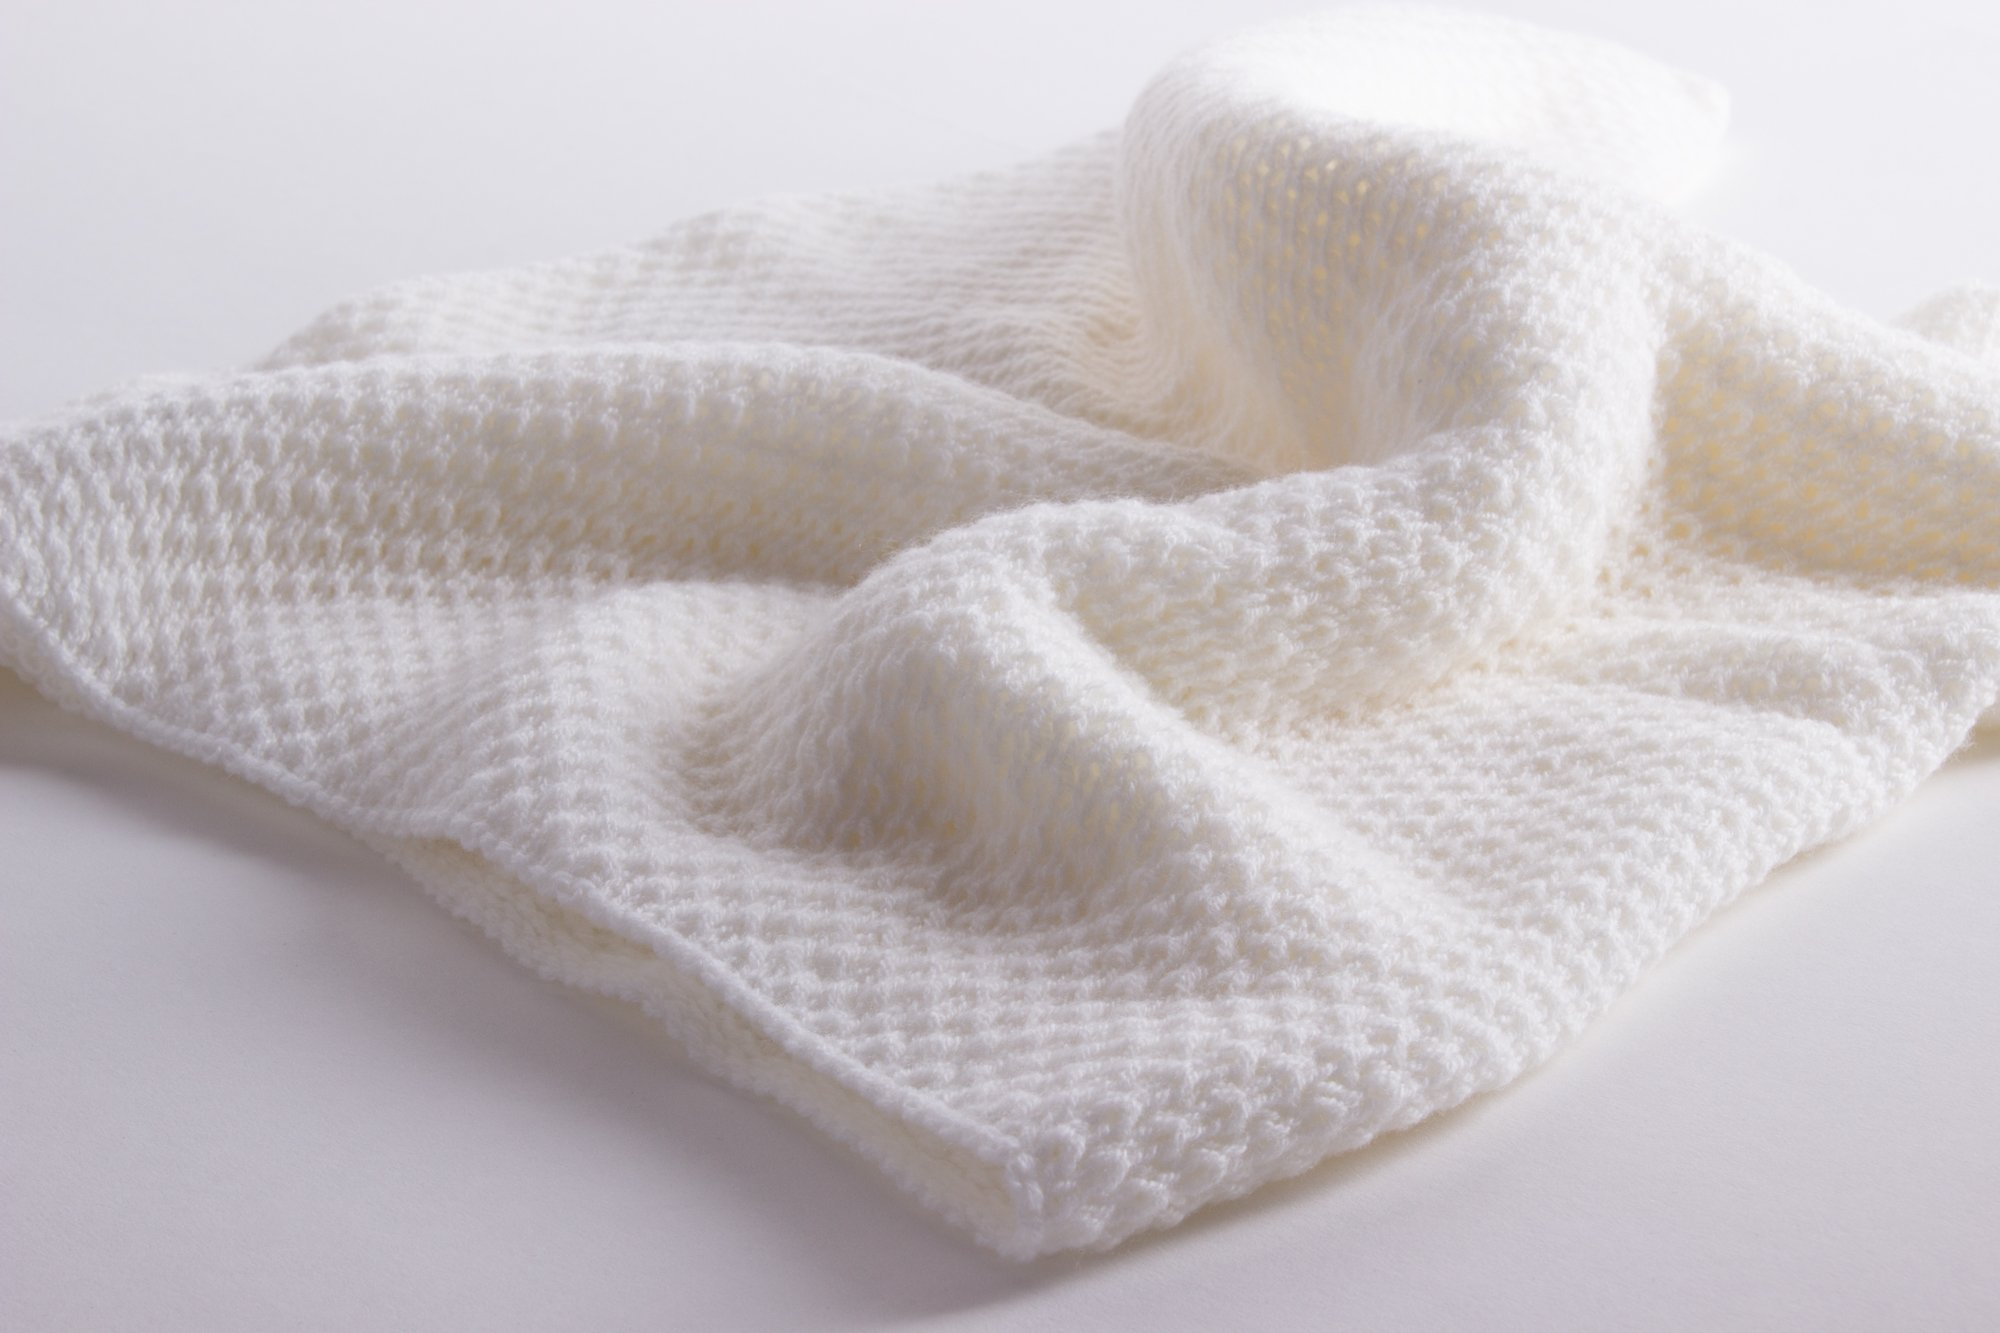 Unisex Super Soft 100% Cashmere Baby Blanket -  White  - hand made in  Scotland by Love Cashmere 02f8f9687